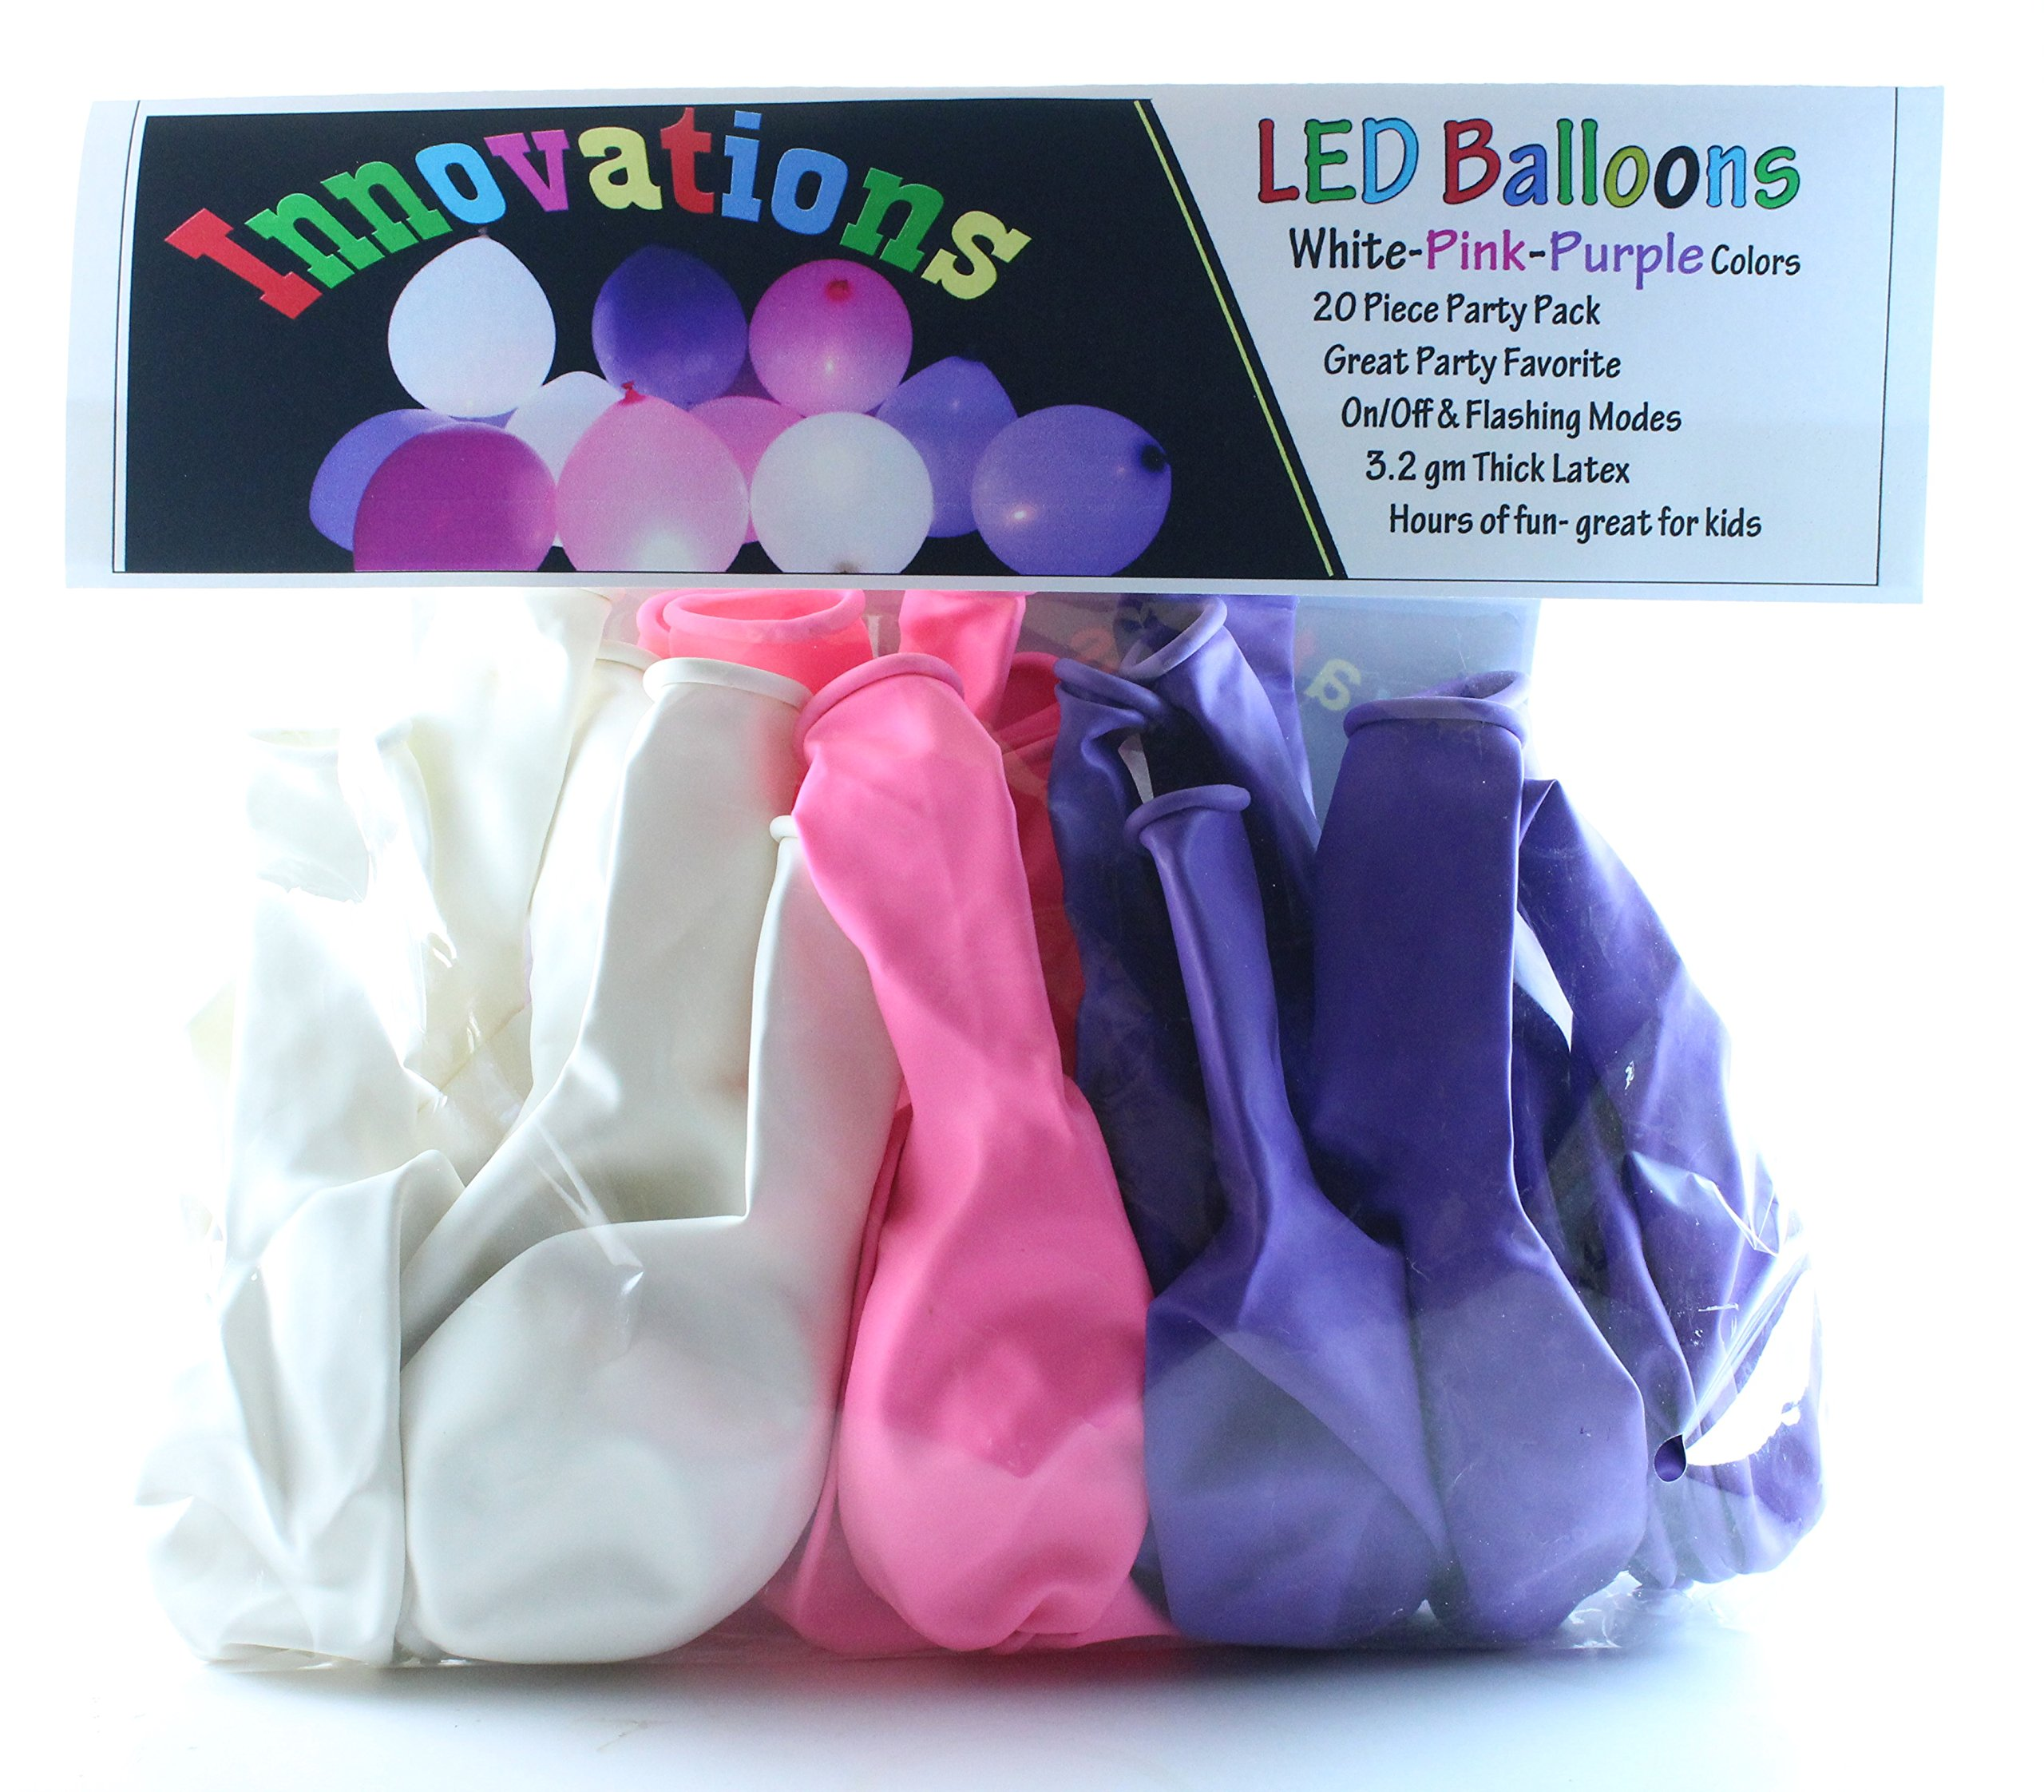 Innovations LED Balloons 20 Pack with White Pink Purple Balloons, Featuring On/Off or Flashing LED Balloon Lights– The Ultimate Lighted Flashing Balloons for a Memorable Occasion (WhitePinkPurple)